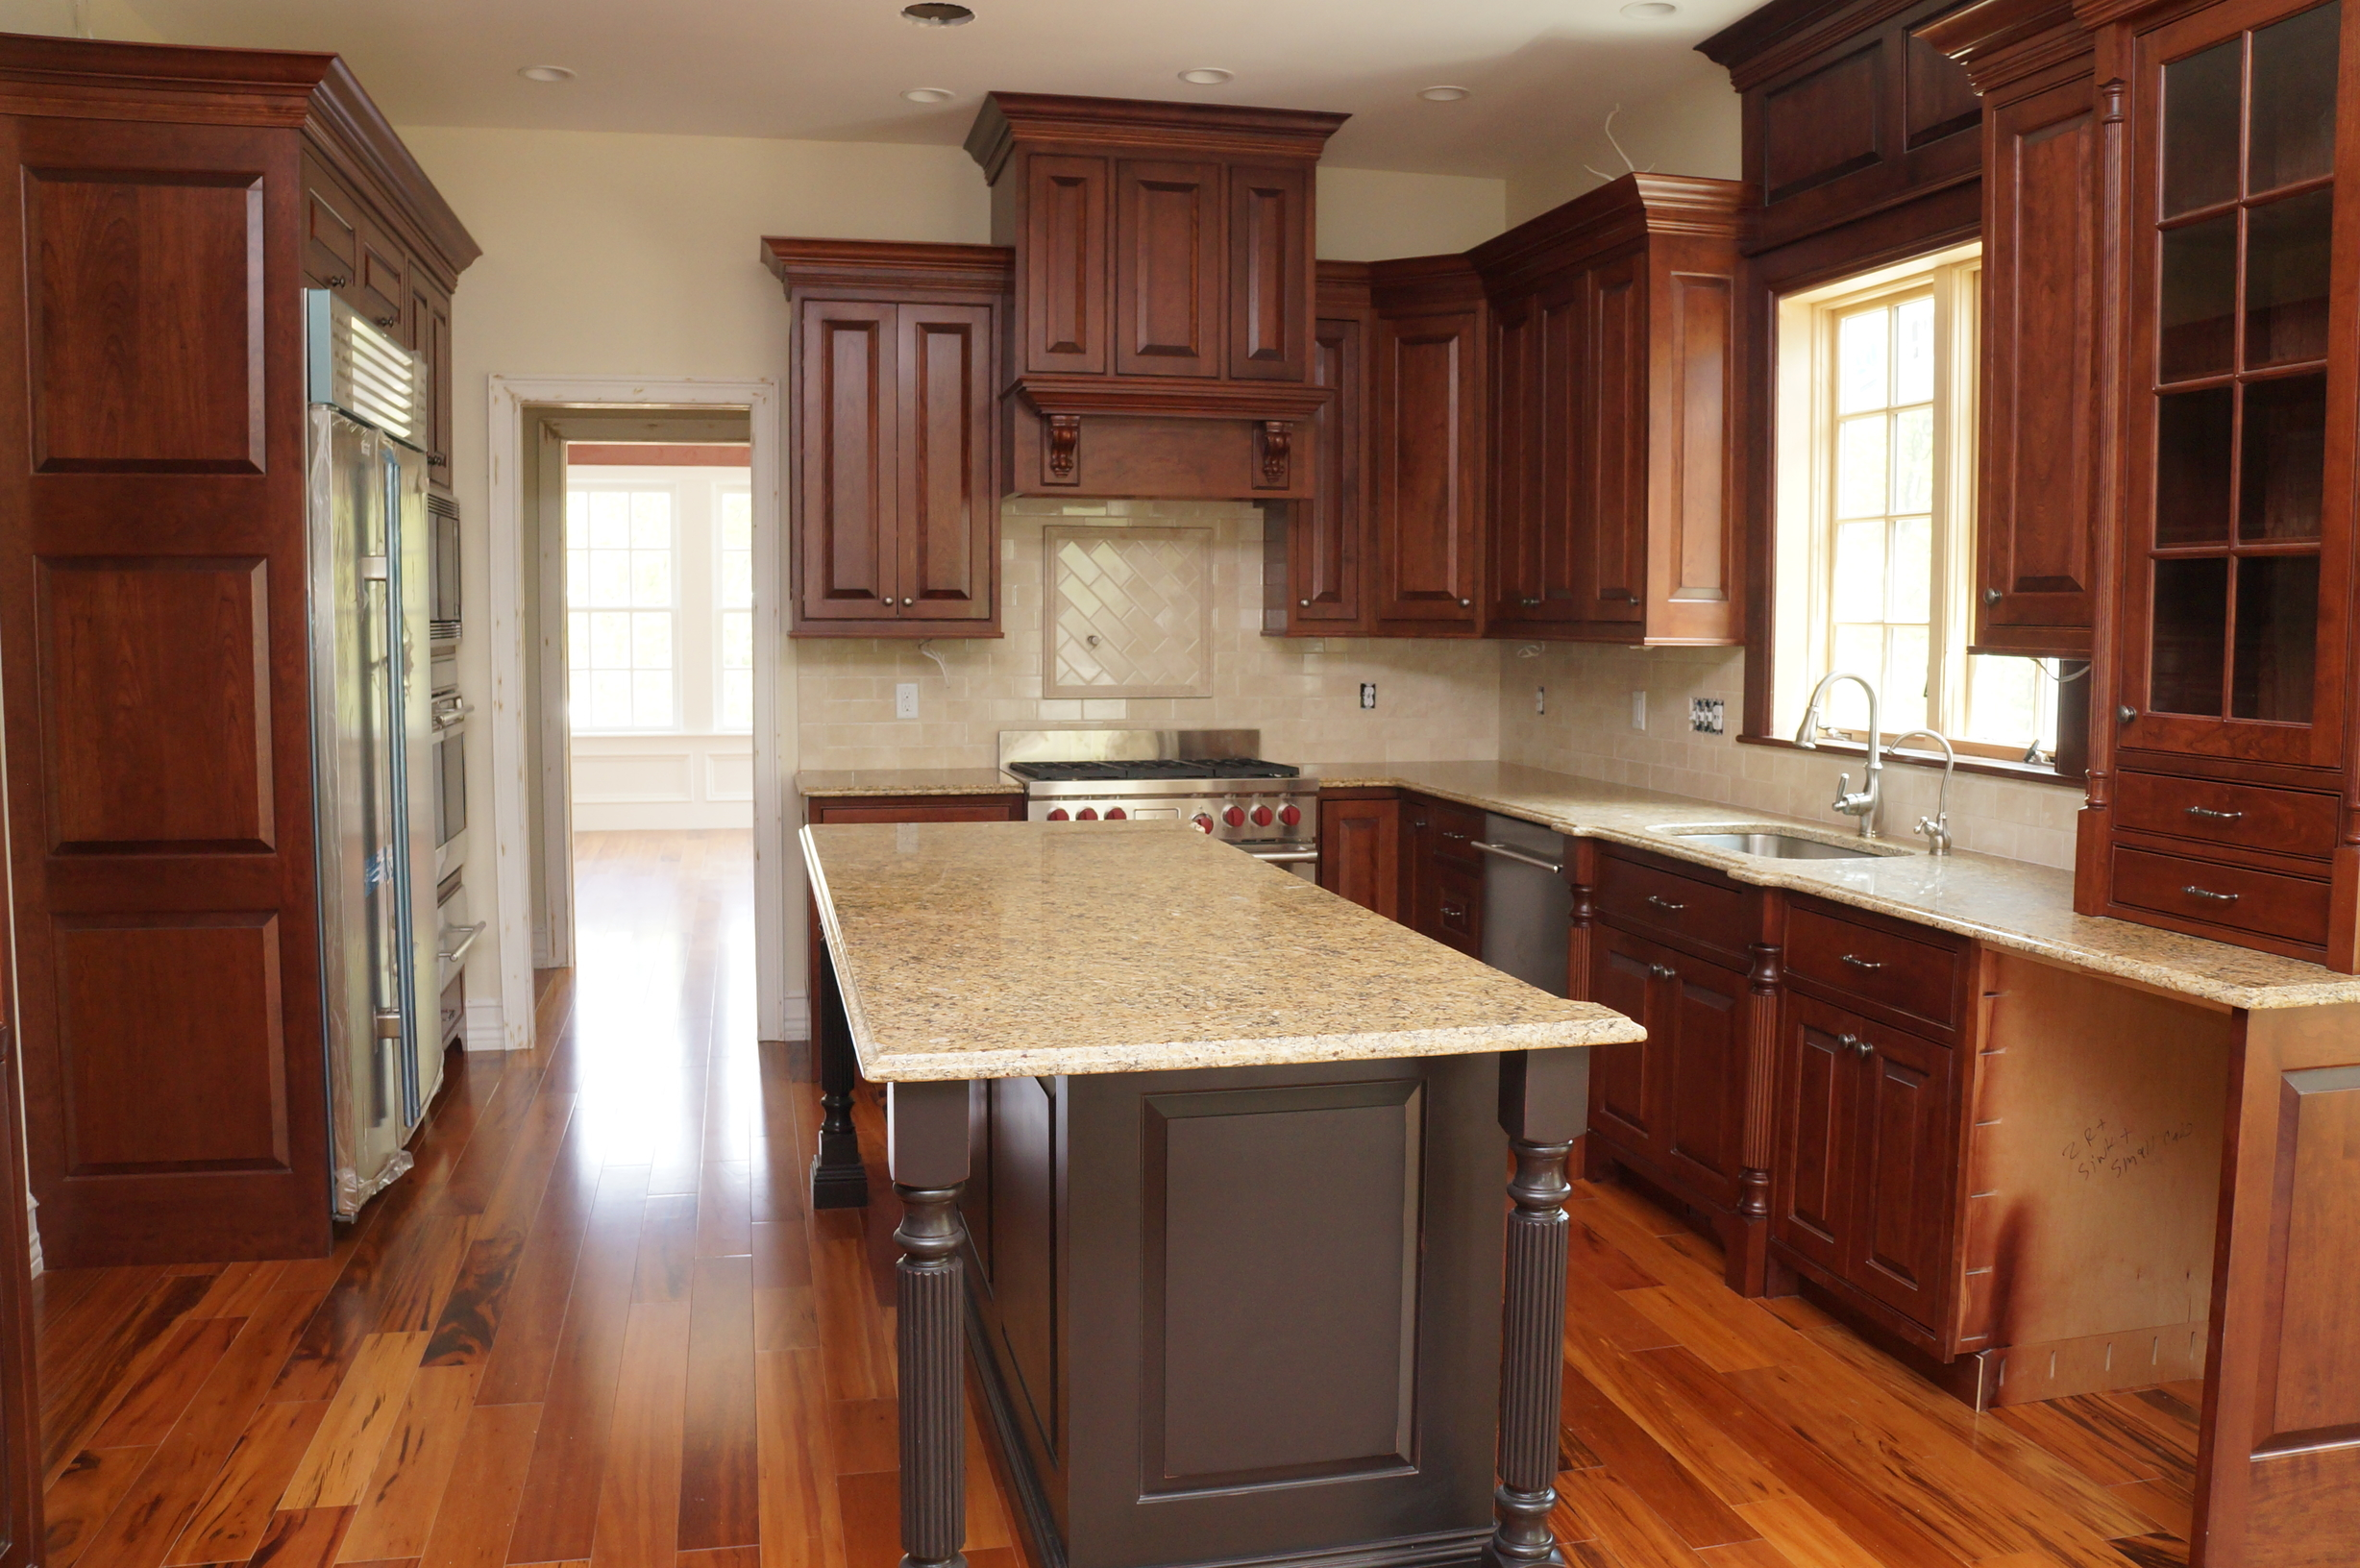 Build a Country Kitchen Wellesley MA